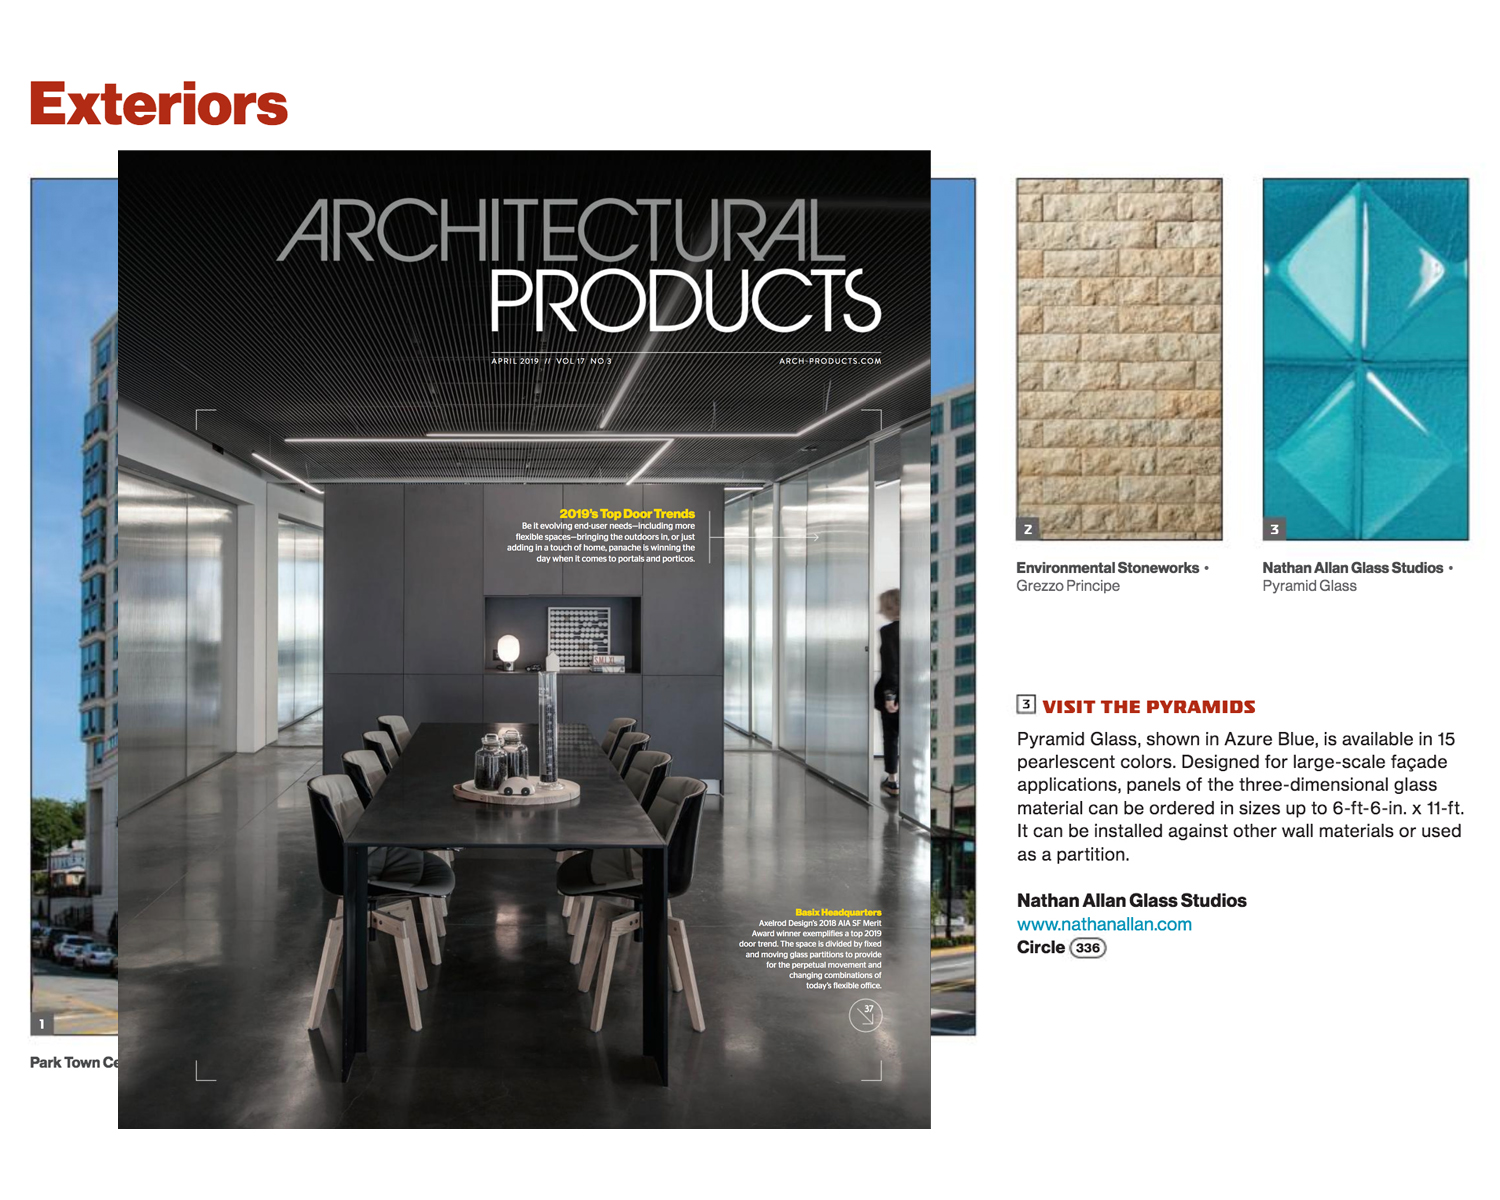 ARCHITECTURAL PRODUCTS | Pyramid